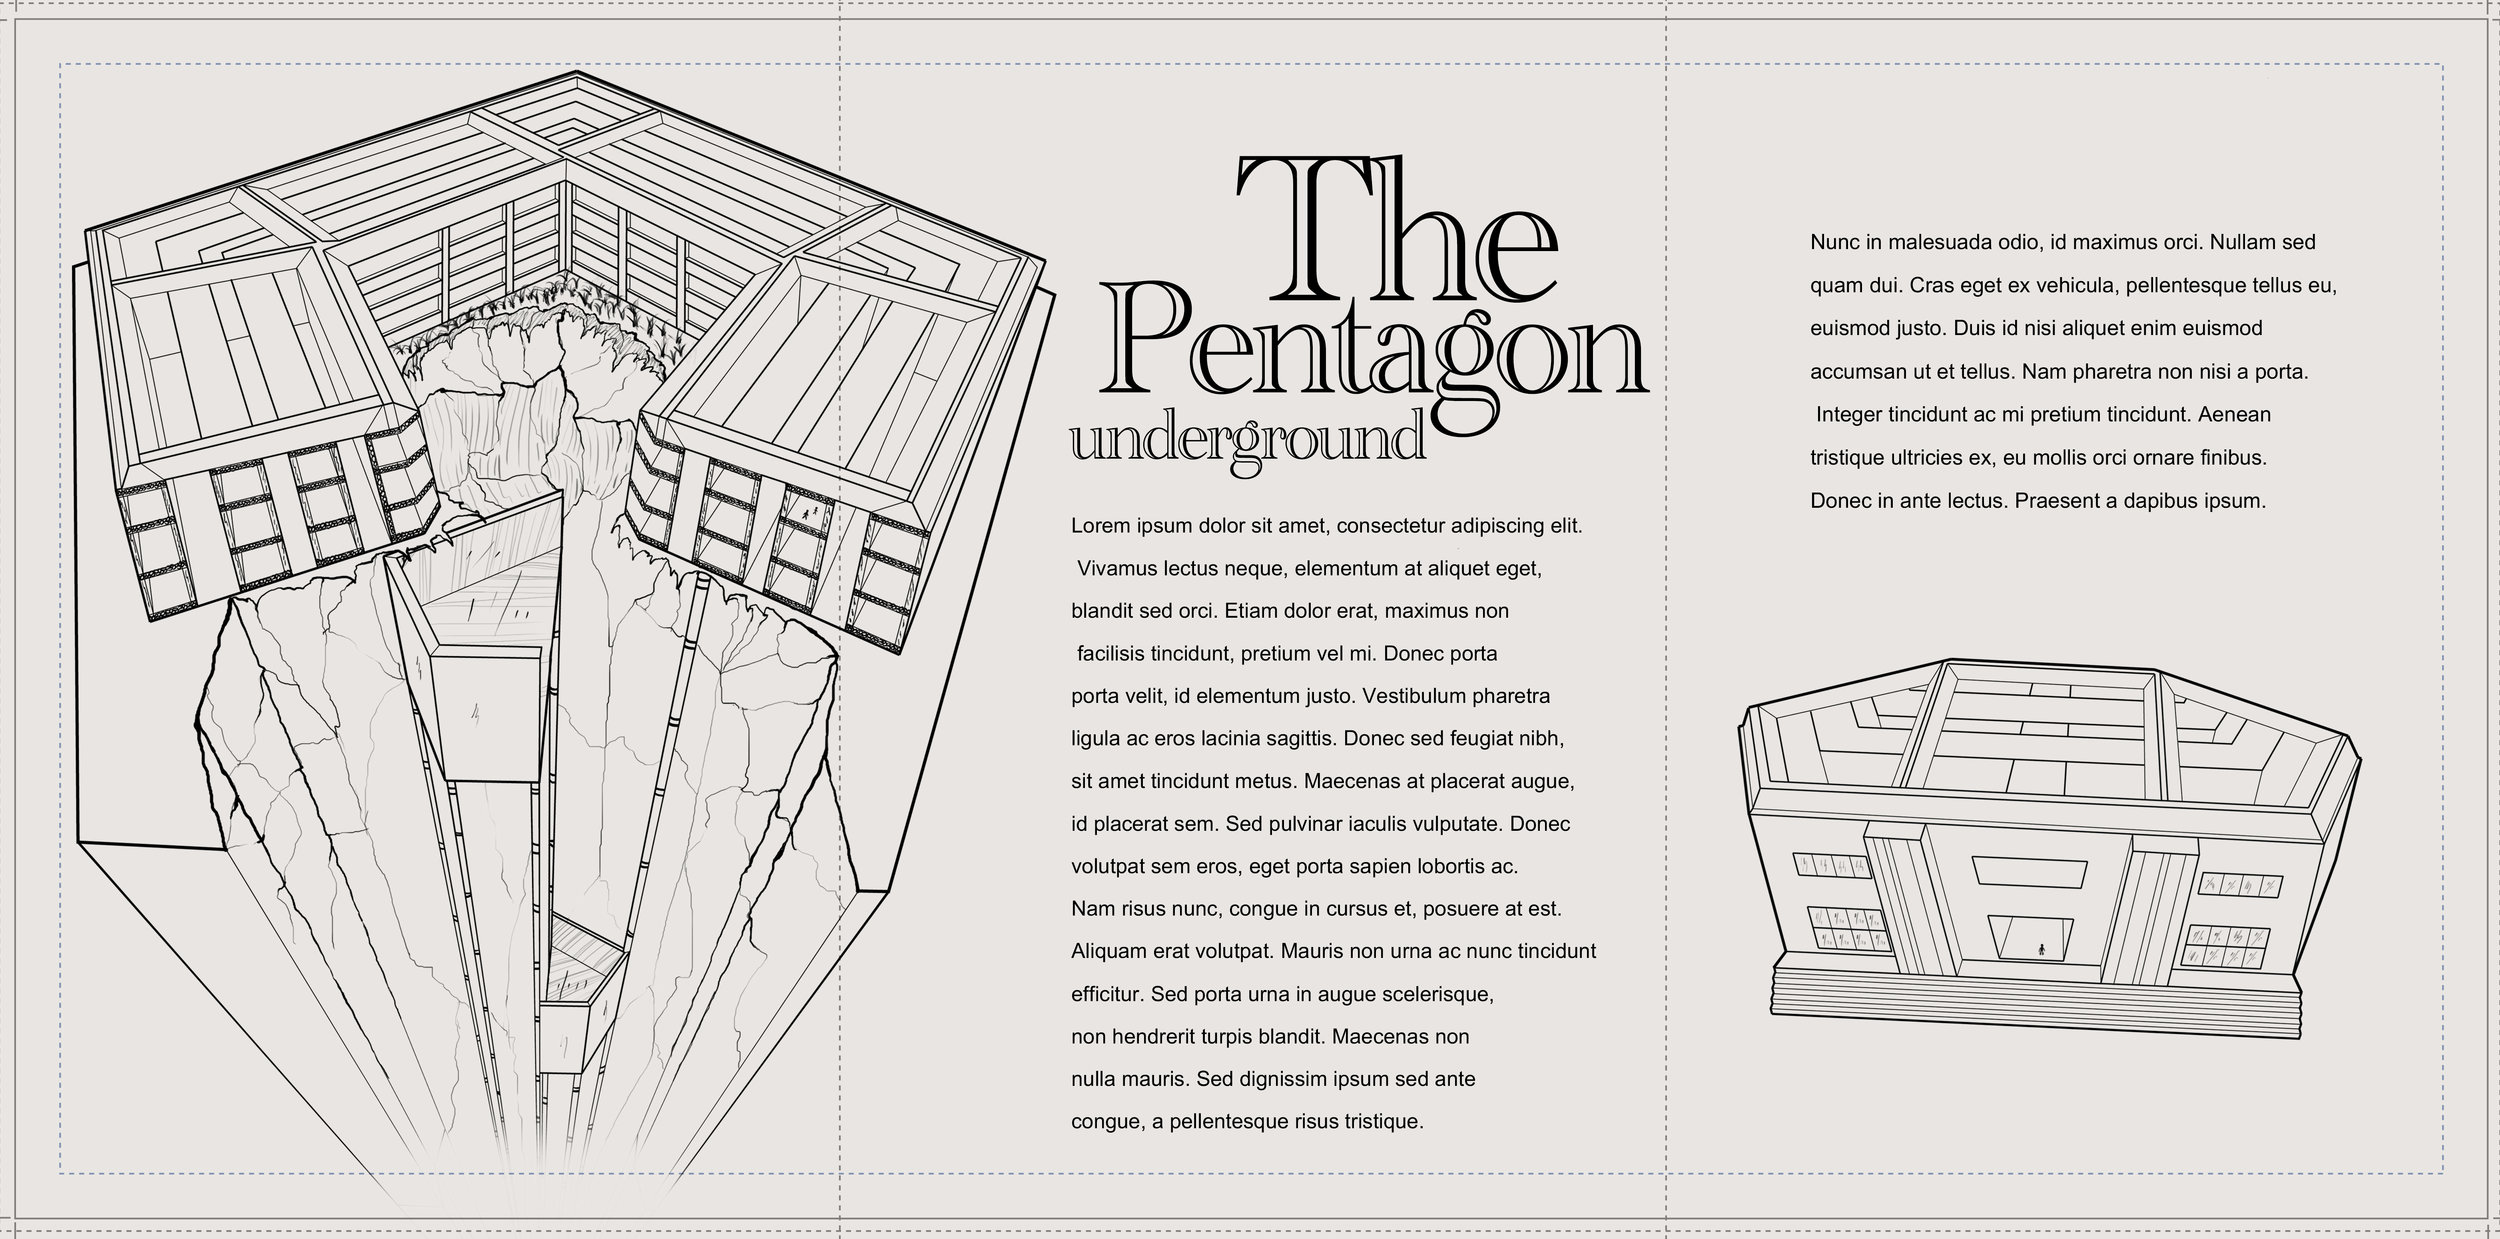 The Pentagon underground - Clean up and layout